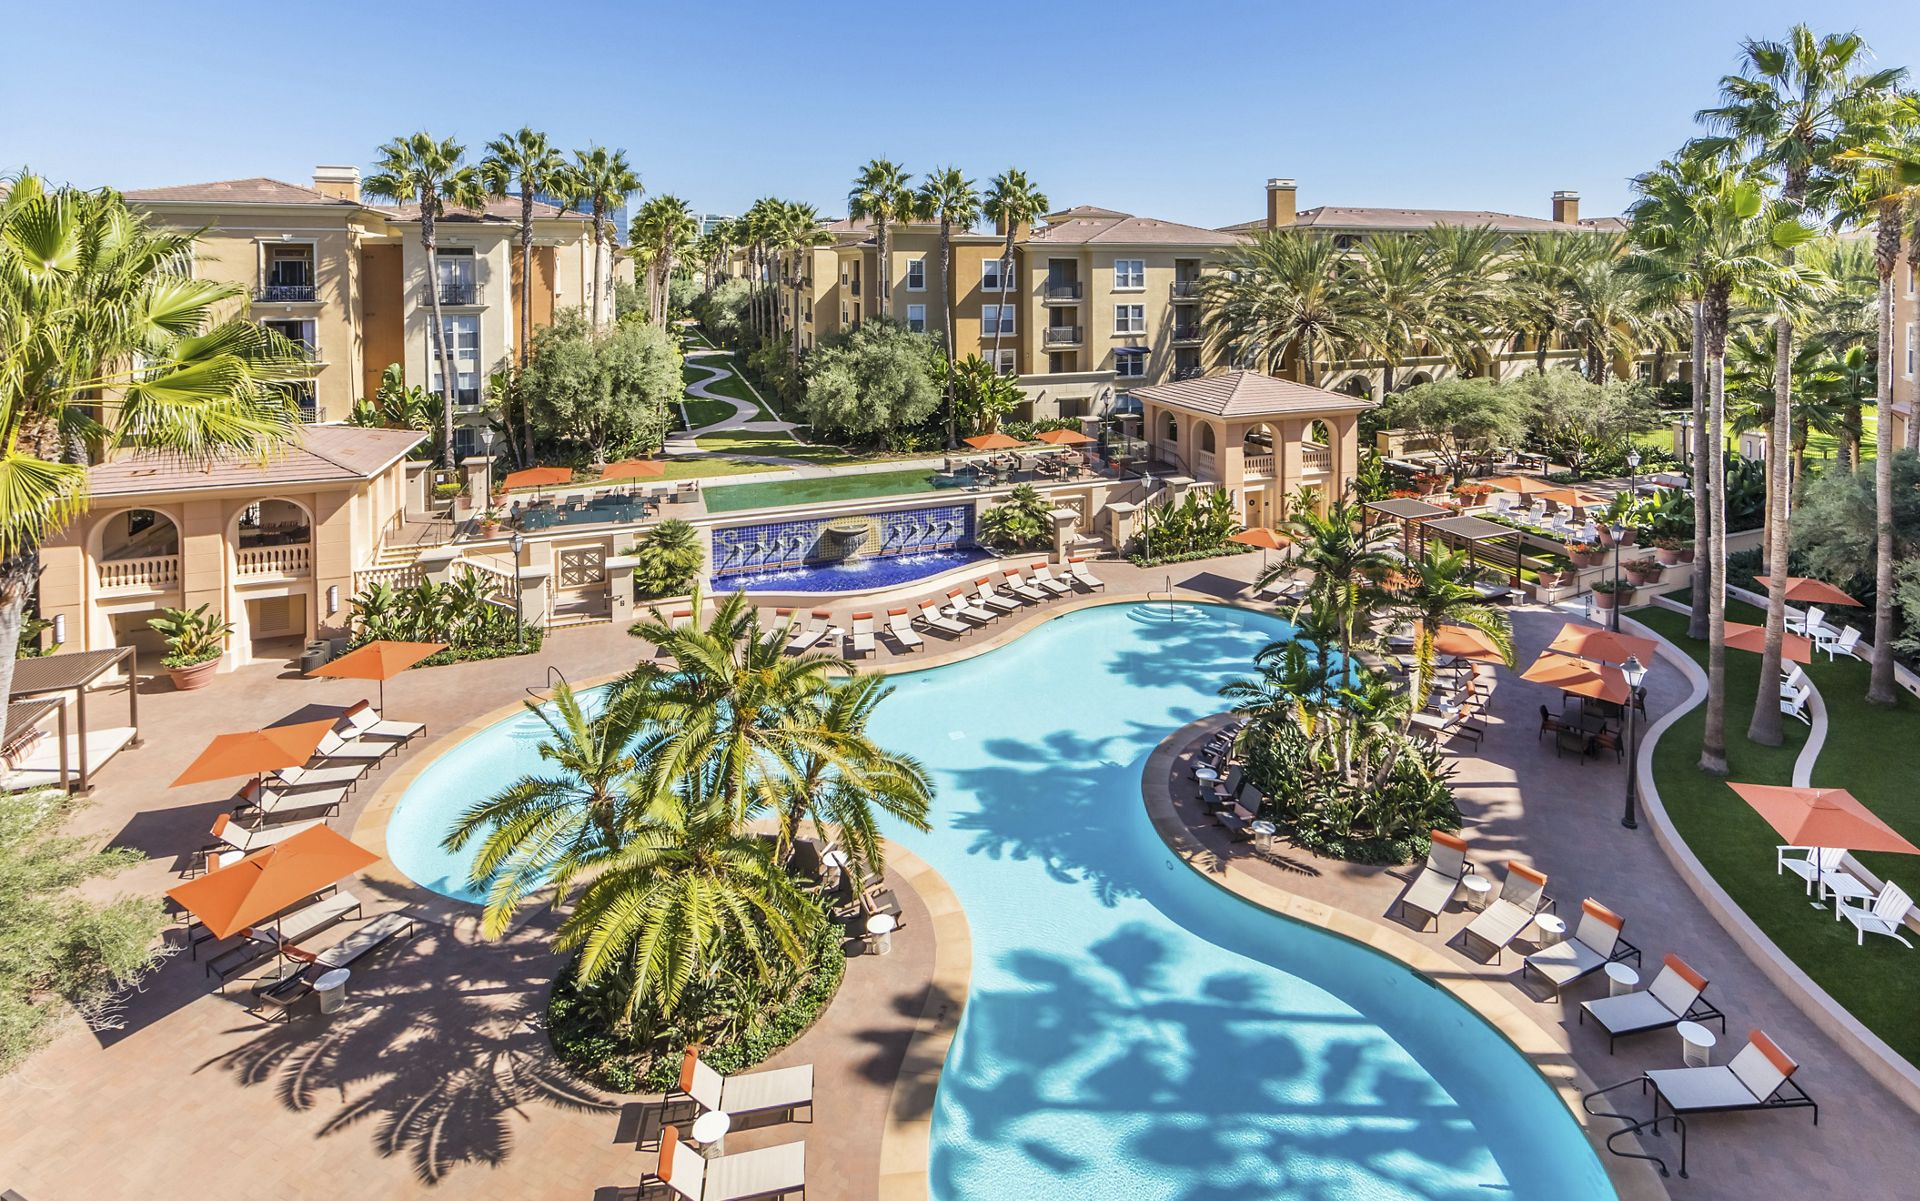 Aerial pool view at Villa Siena Apartment Homes in Irvine, CA.